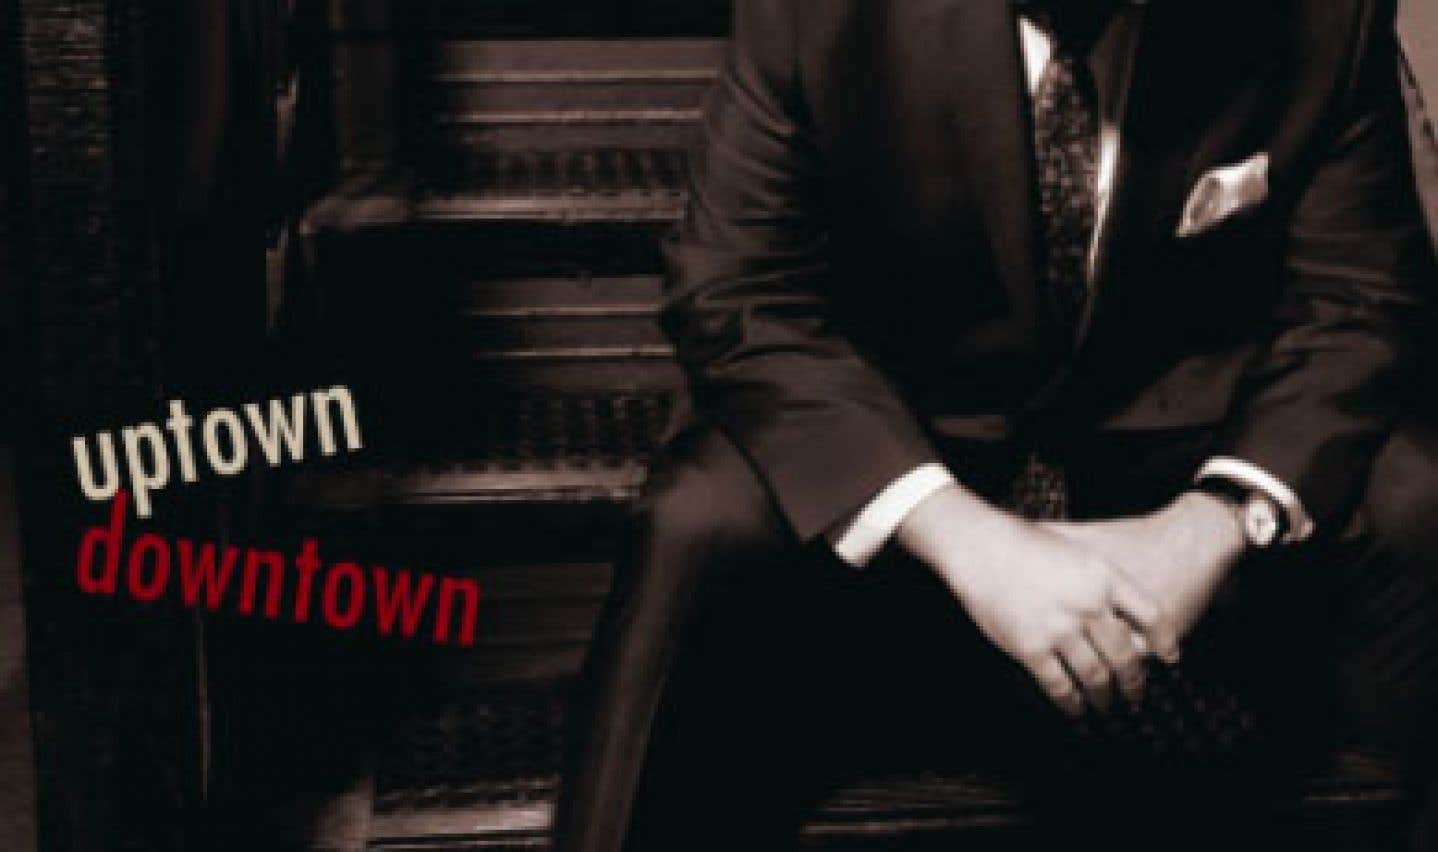 Uptown Downtown, Bill Charlap